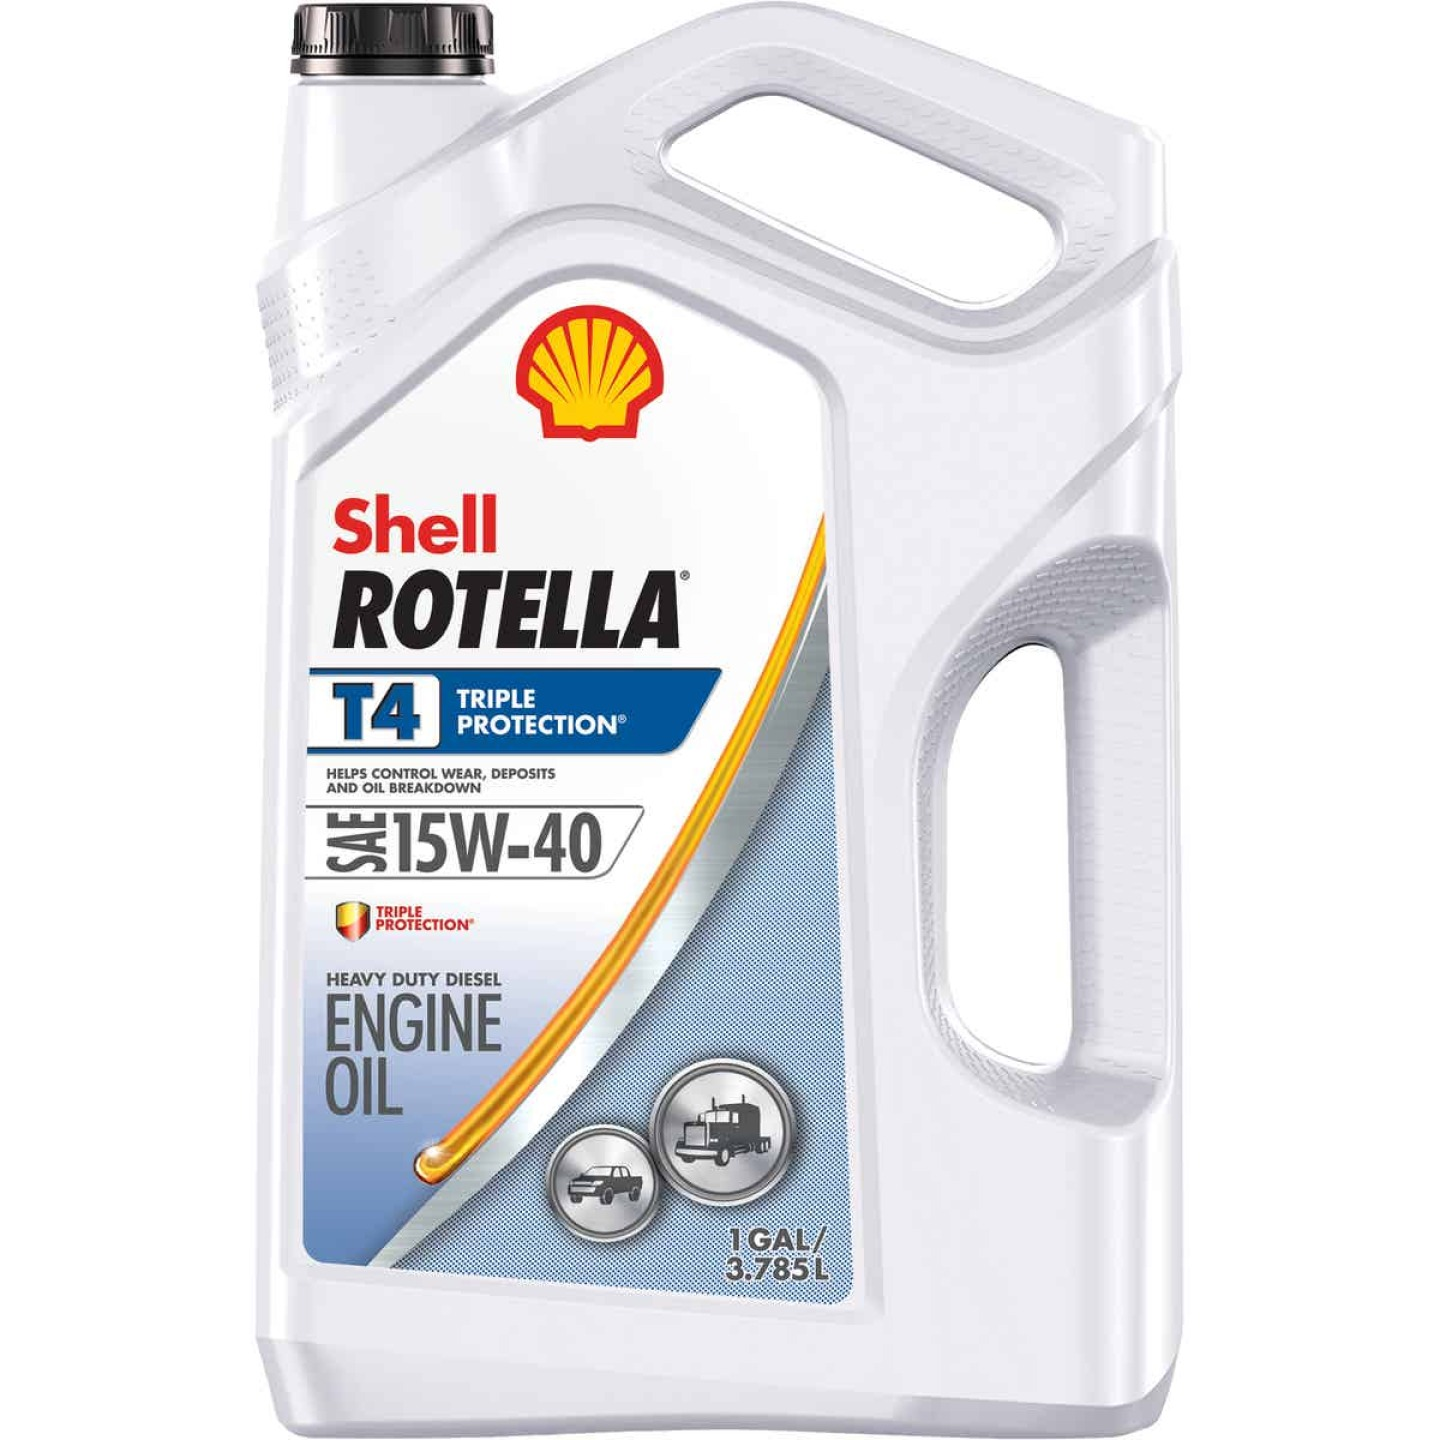 ROTELLA 15W40 Gallon Triple Protection Motor Oil Image 1